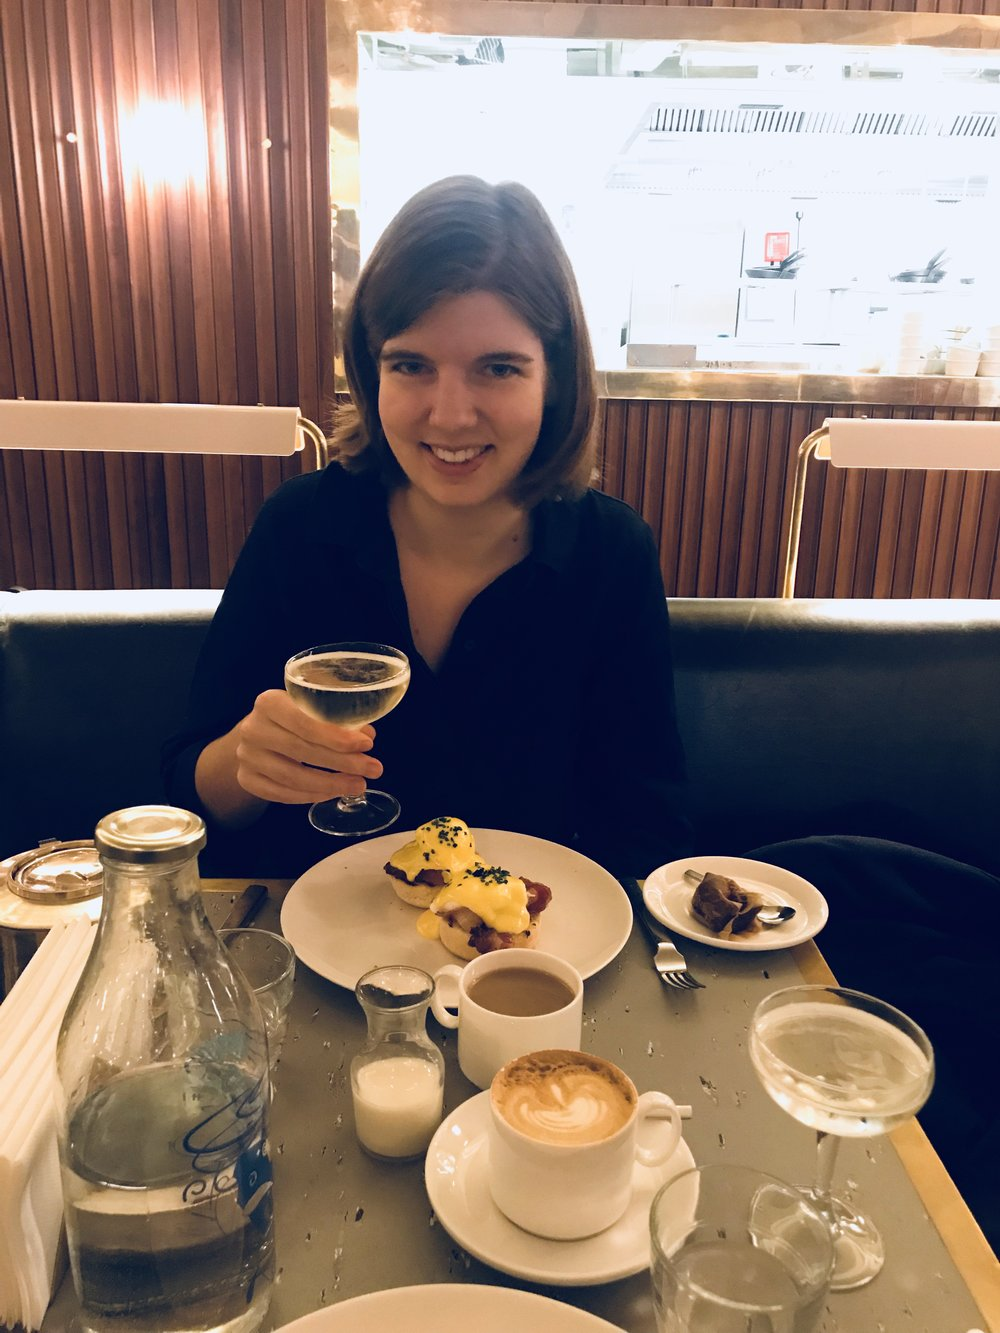 Celebratory brunch on Monday at 8am, just after the first offer came through, and at the start of the maddest, most joyous week of my life